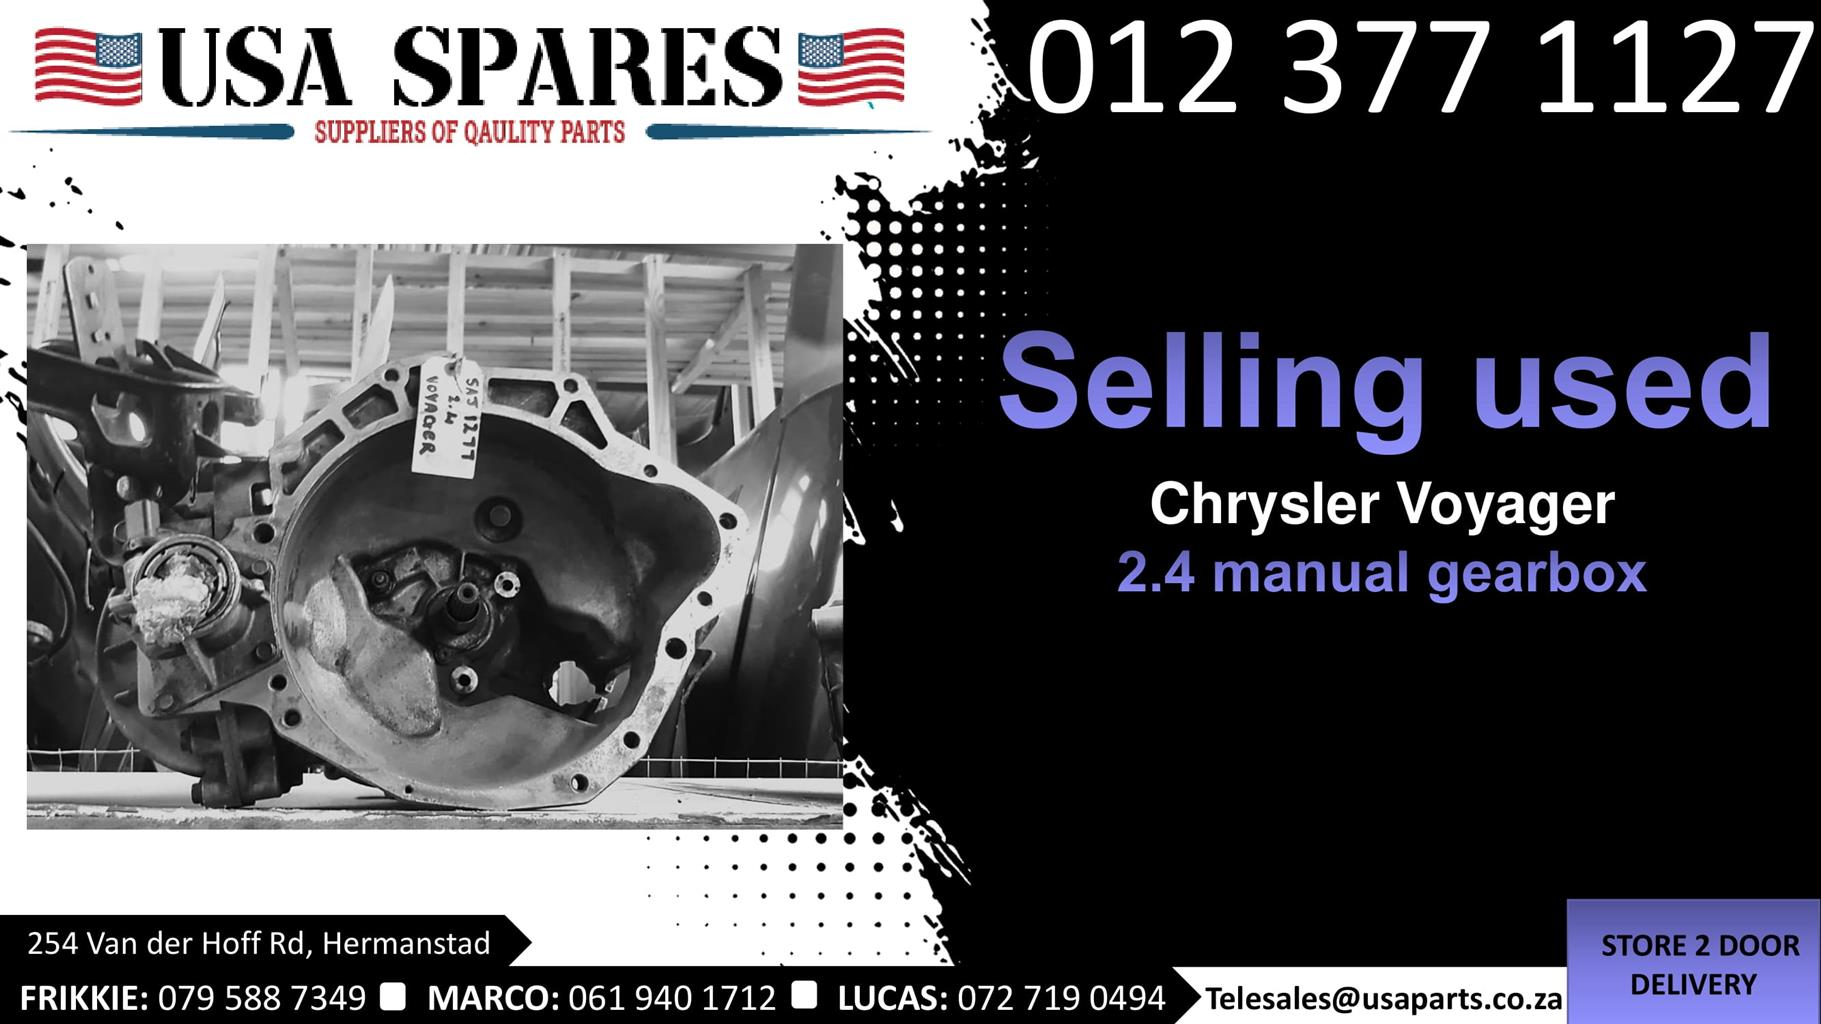 Chrysler Voyager 2.4 1999-03 manual gearbox for sale